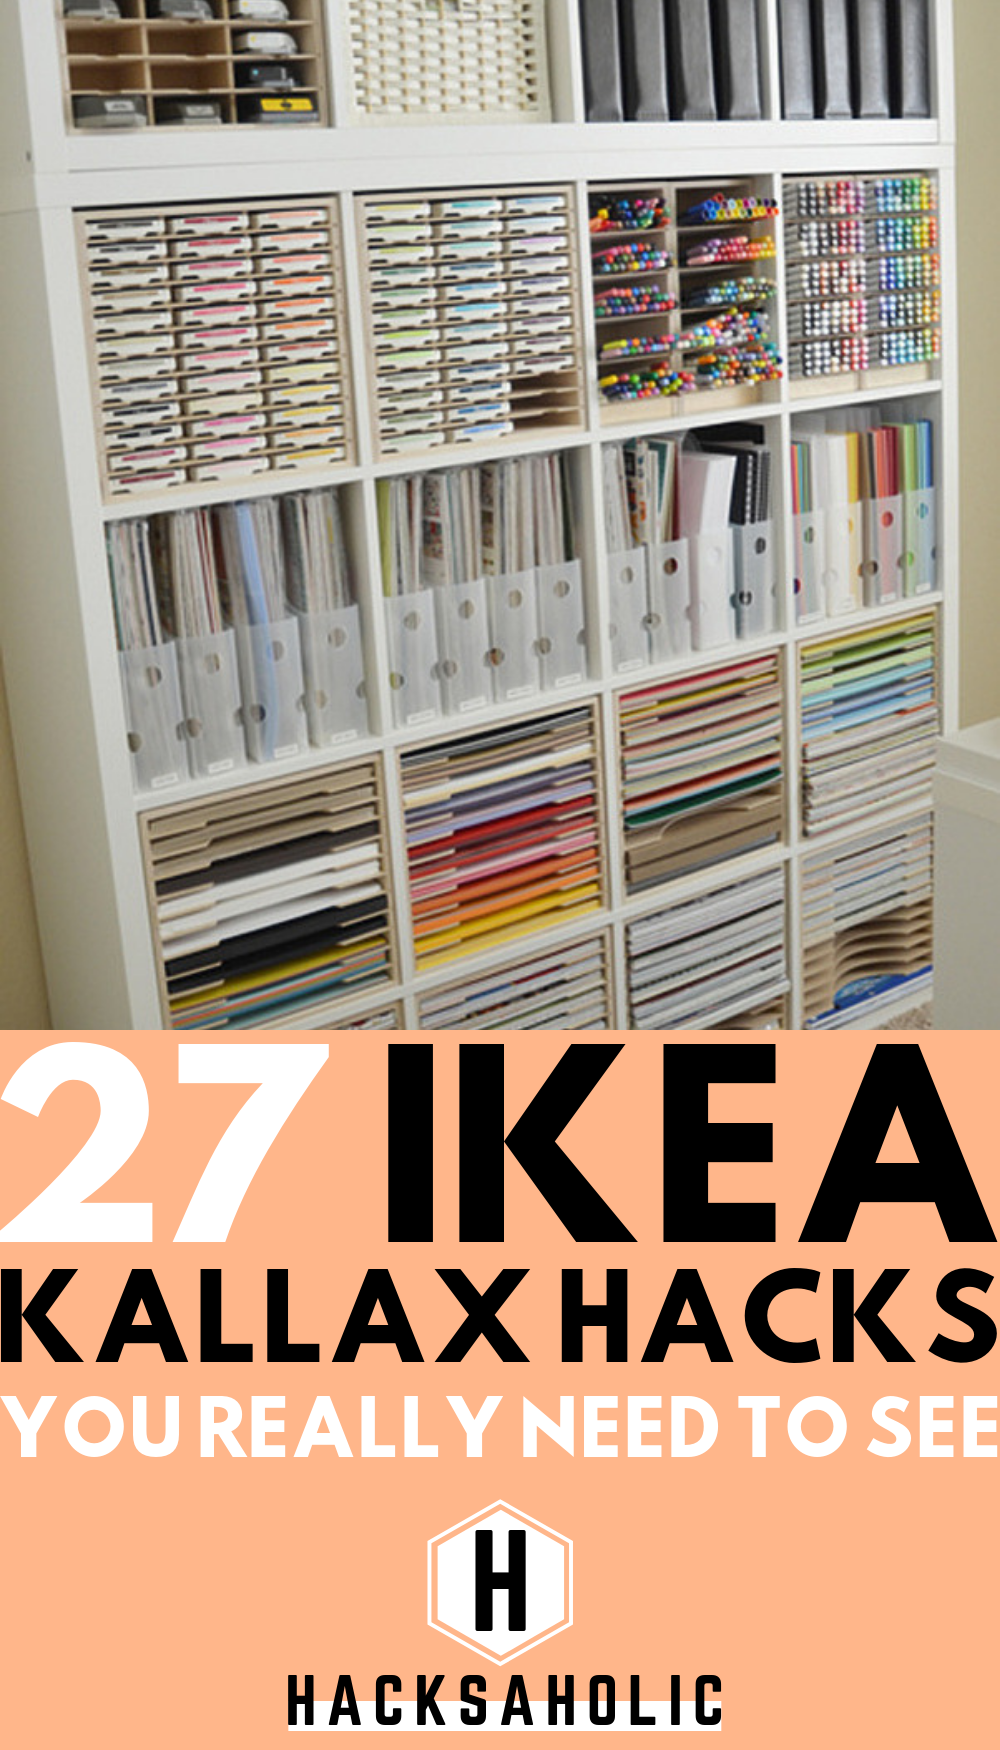 There are so many great Ikea Kallax hacks out there but which are the best? We've brought together the very best Ikea Kallax hacks for you in one place. You can create so many gorgeous and practical pieces of furniture with an Ikea Kallax.